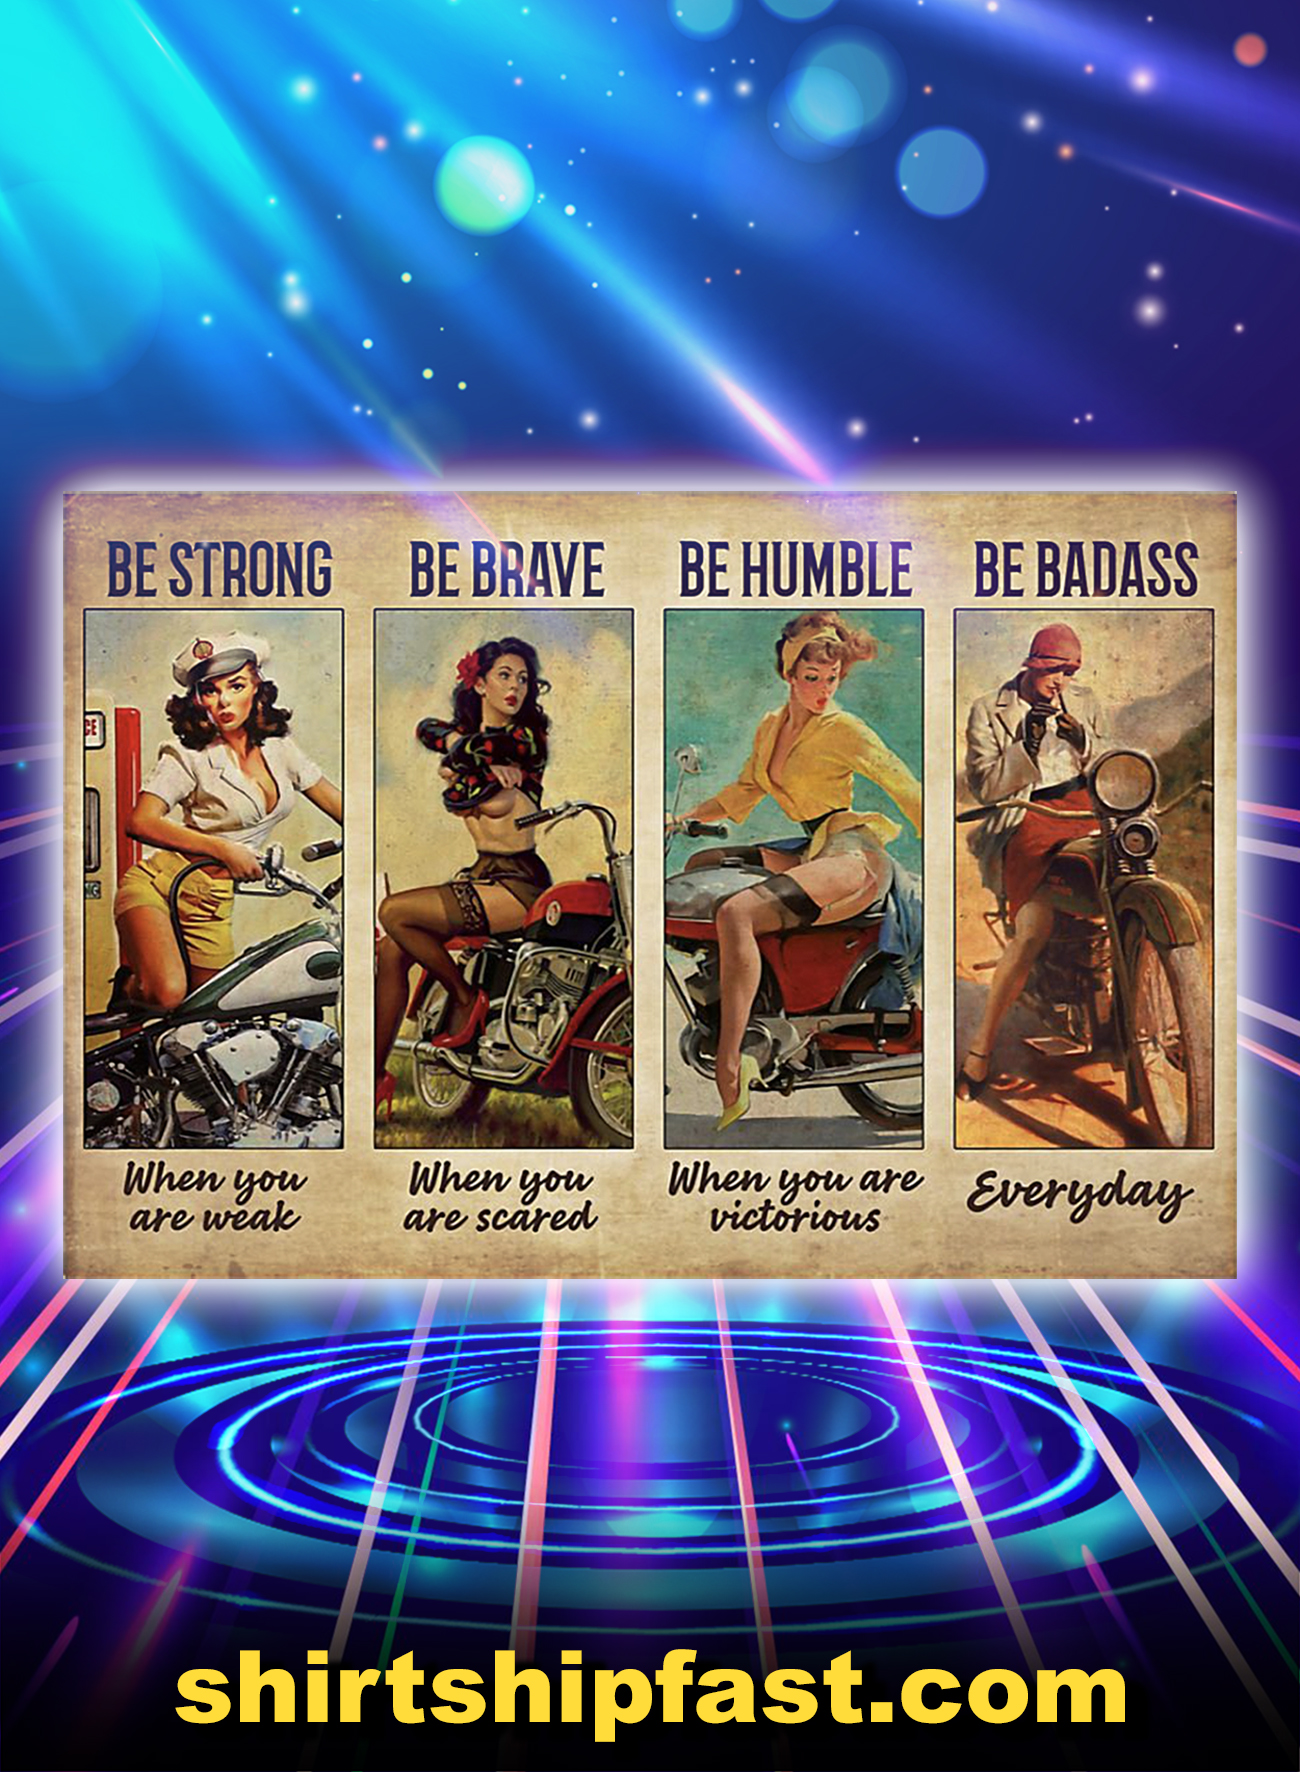 Be strong be brave be humble be badass biker girl poster - A1